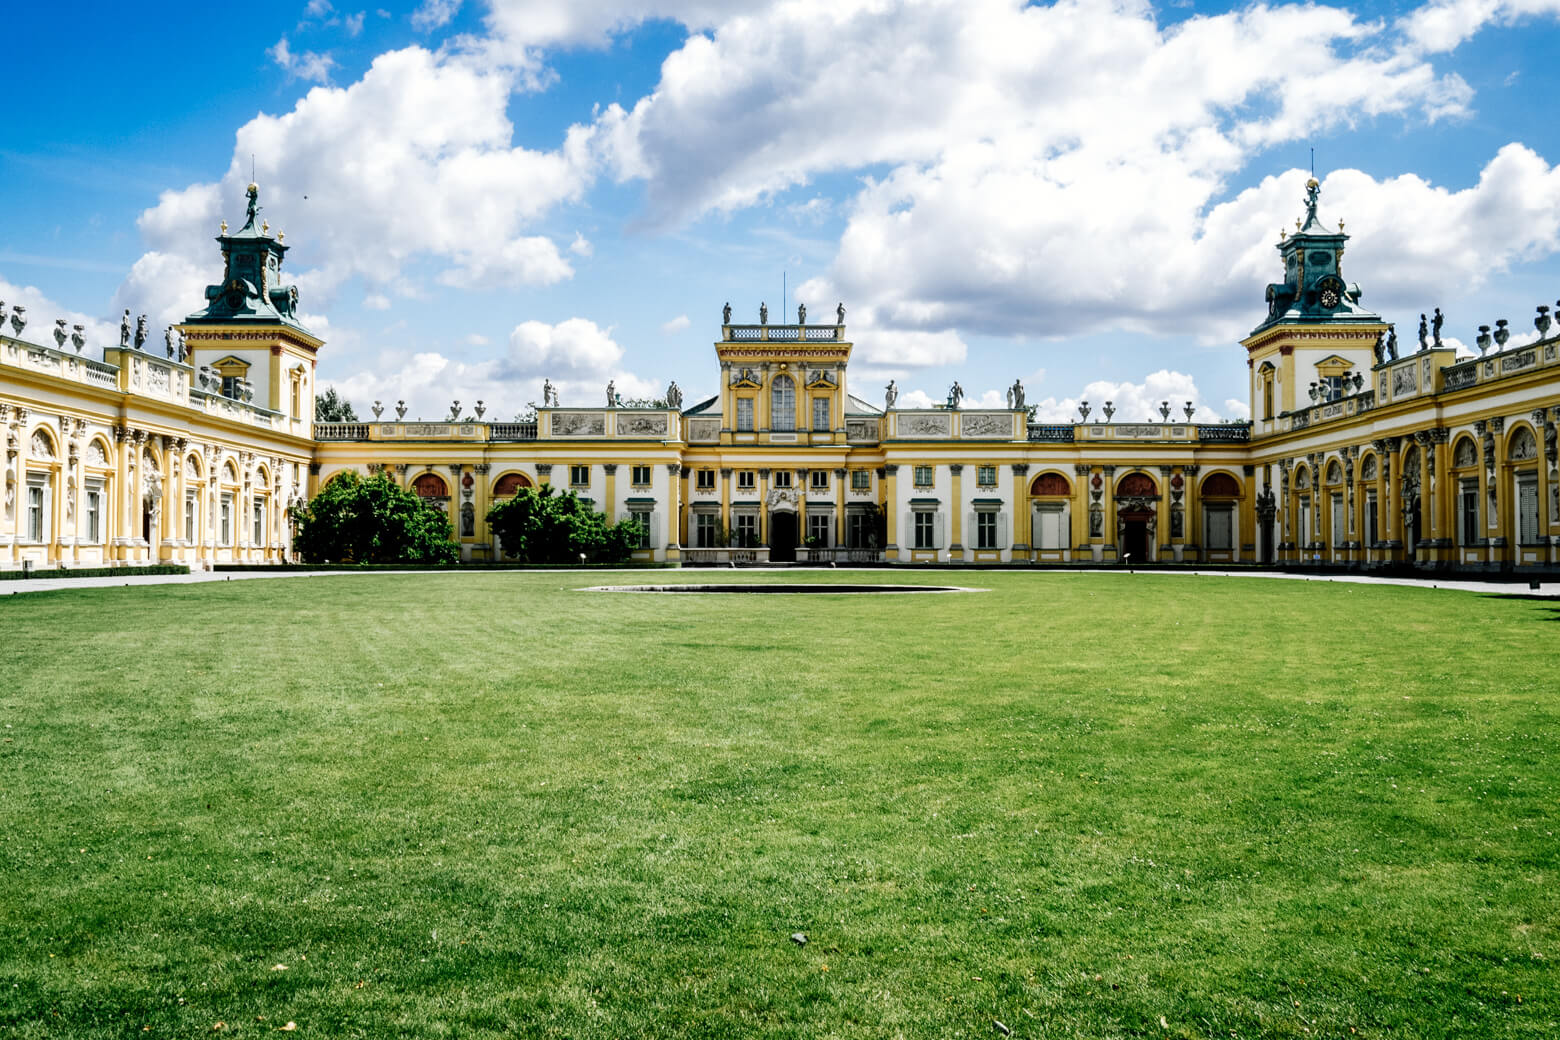 Wilanow Palace in the Summer